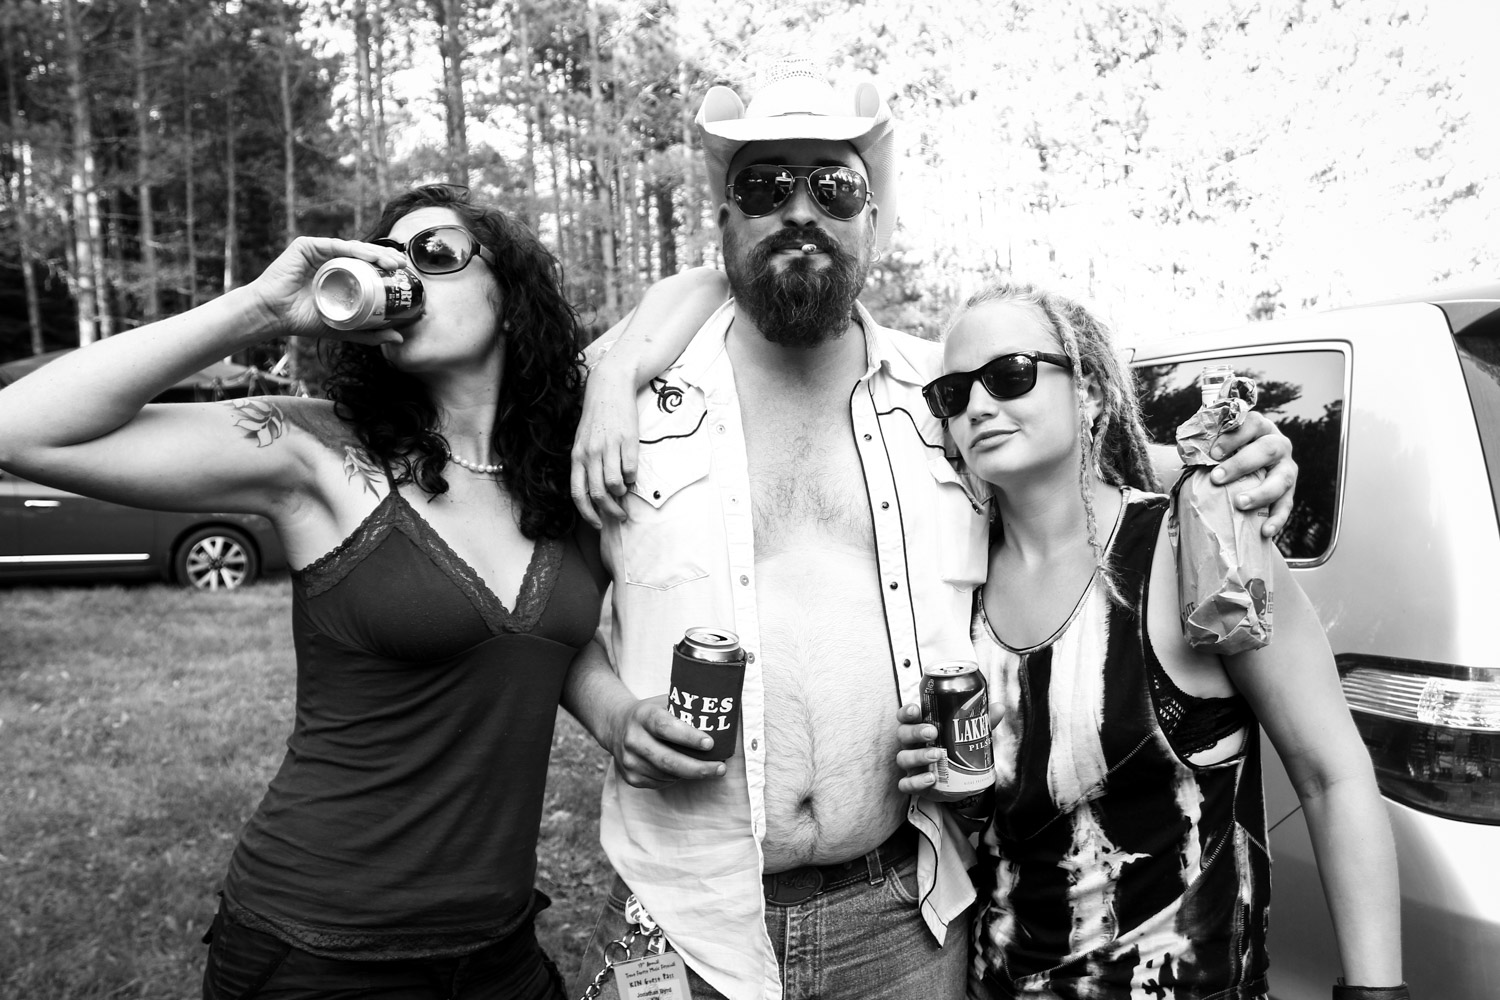 Miss Quincy & The Showdown and Andrew Neville backstage at Trout Forest Music Festival